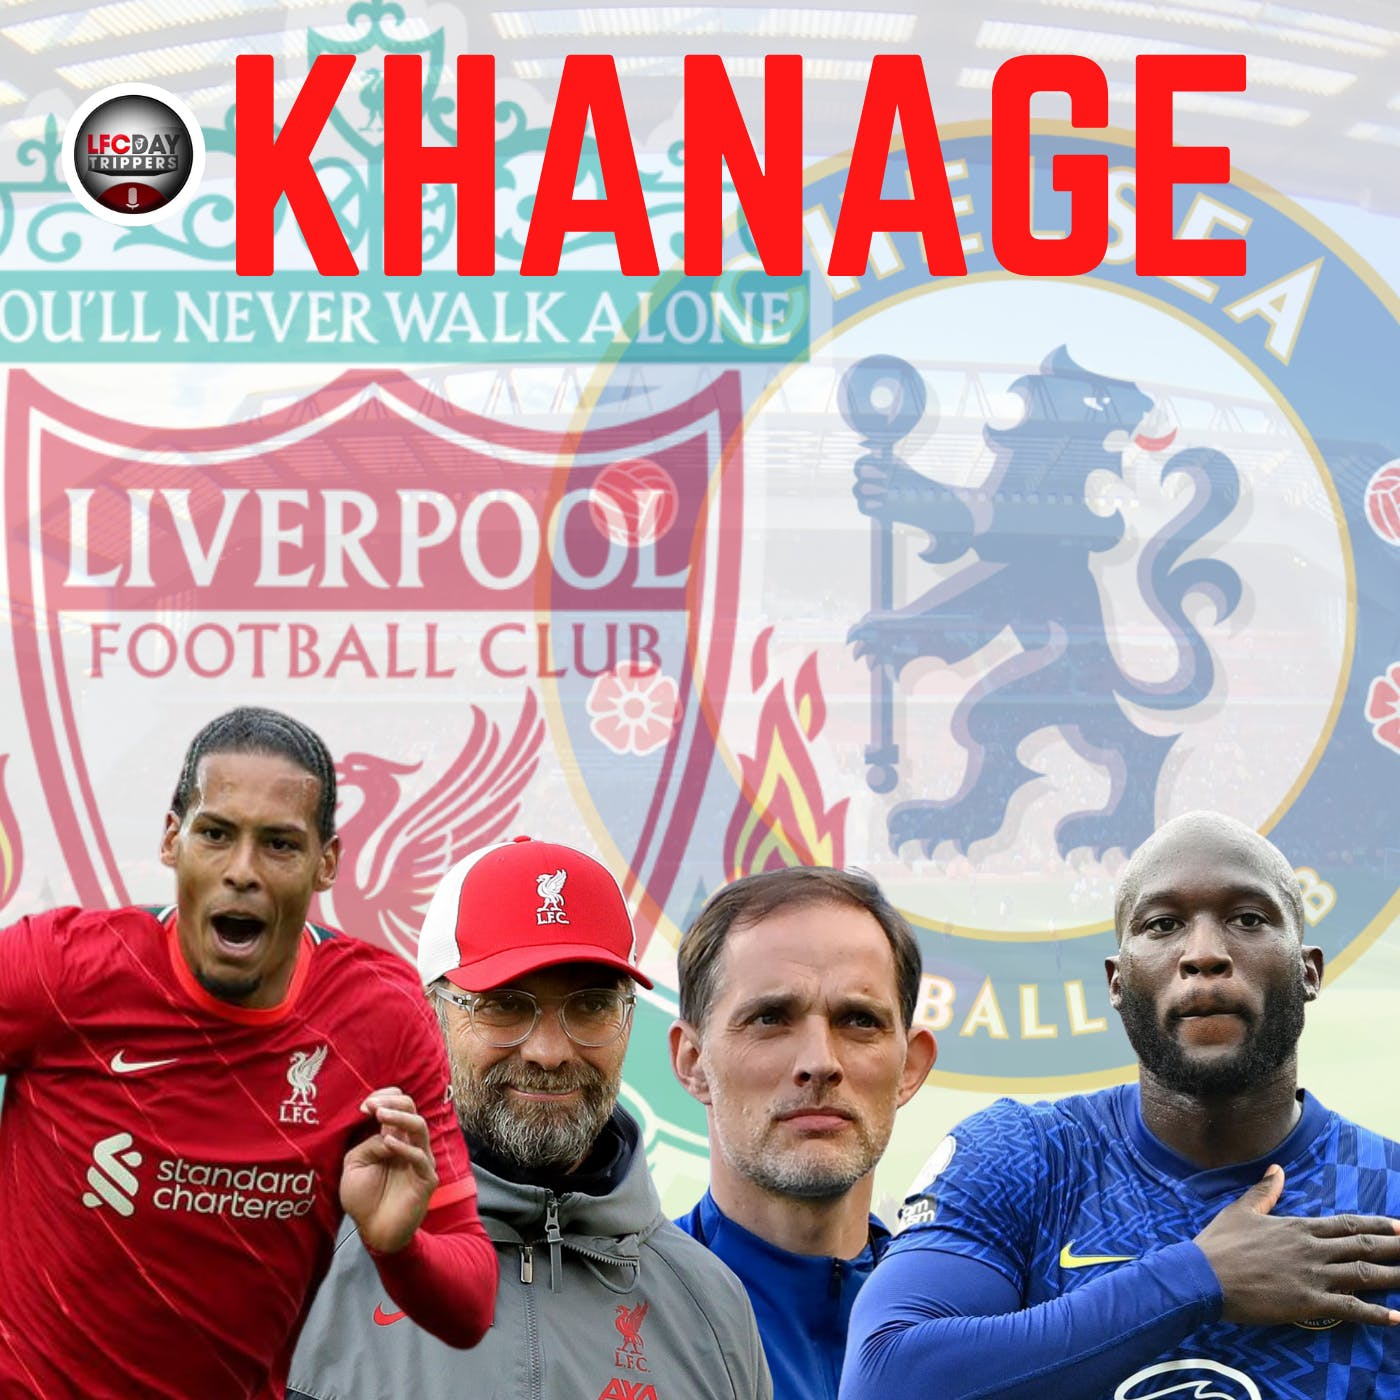 Liverpool v Chelsea Fan Preview | Khanage | LFC Daytrippers